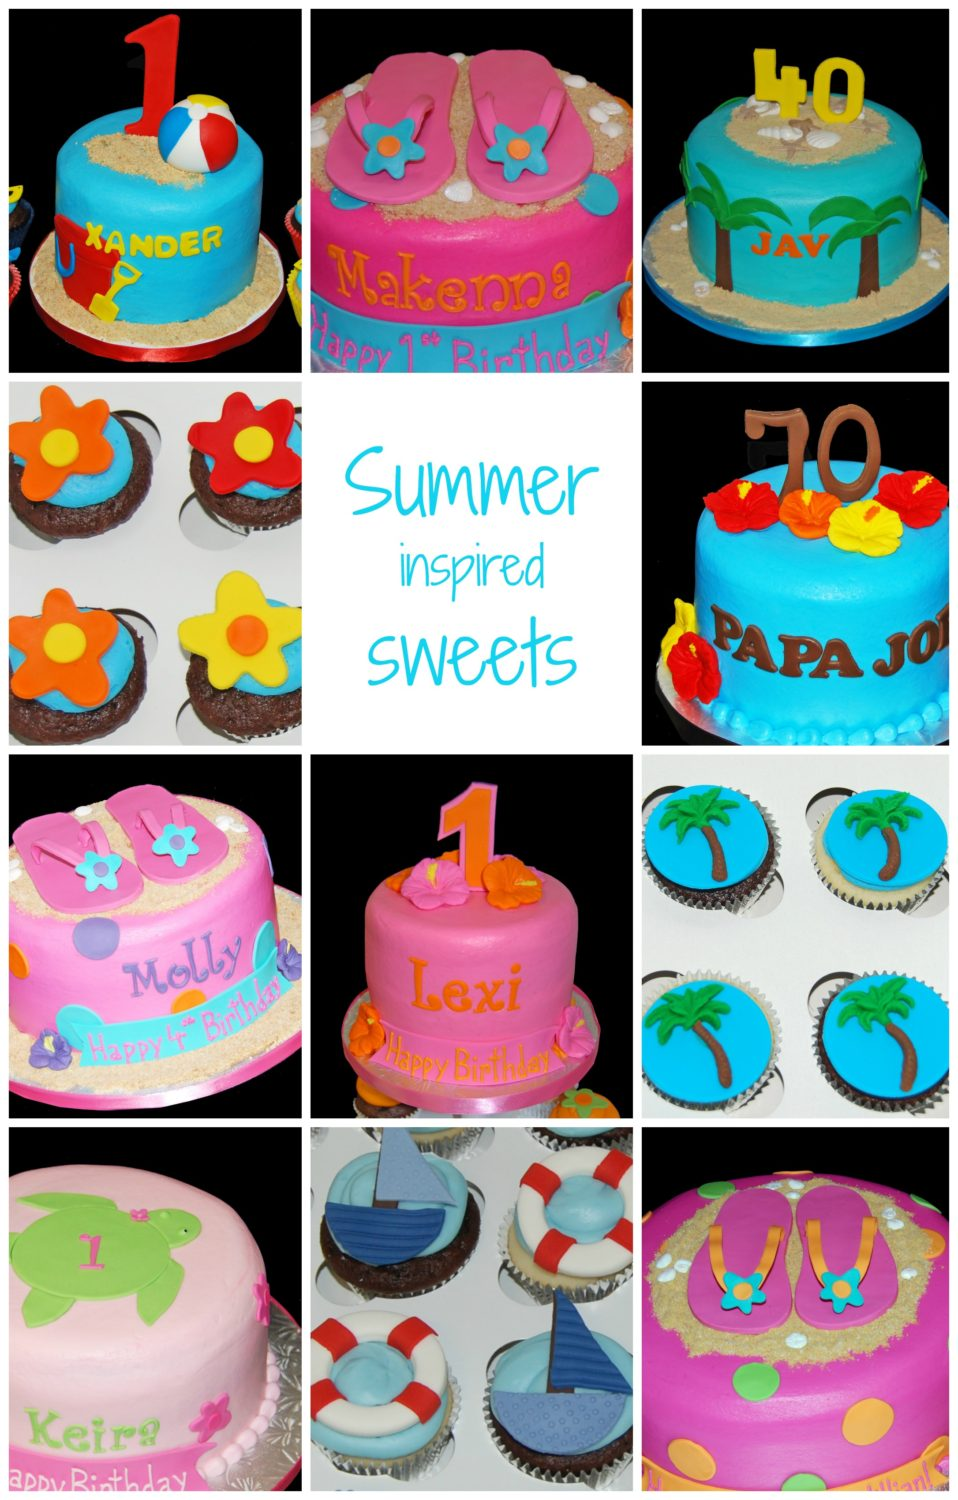 Summer inspired cake and cupcake designs